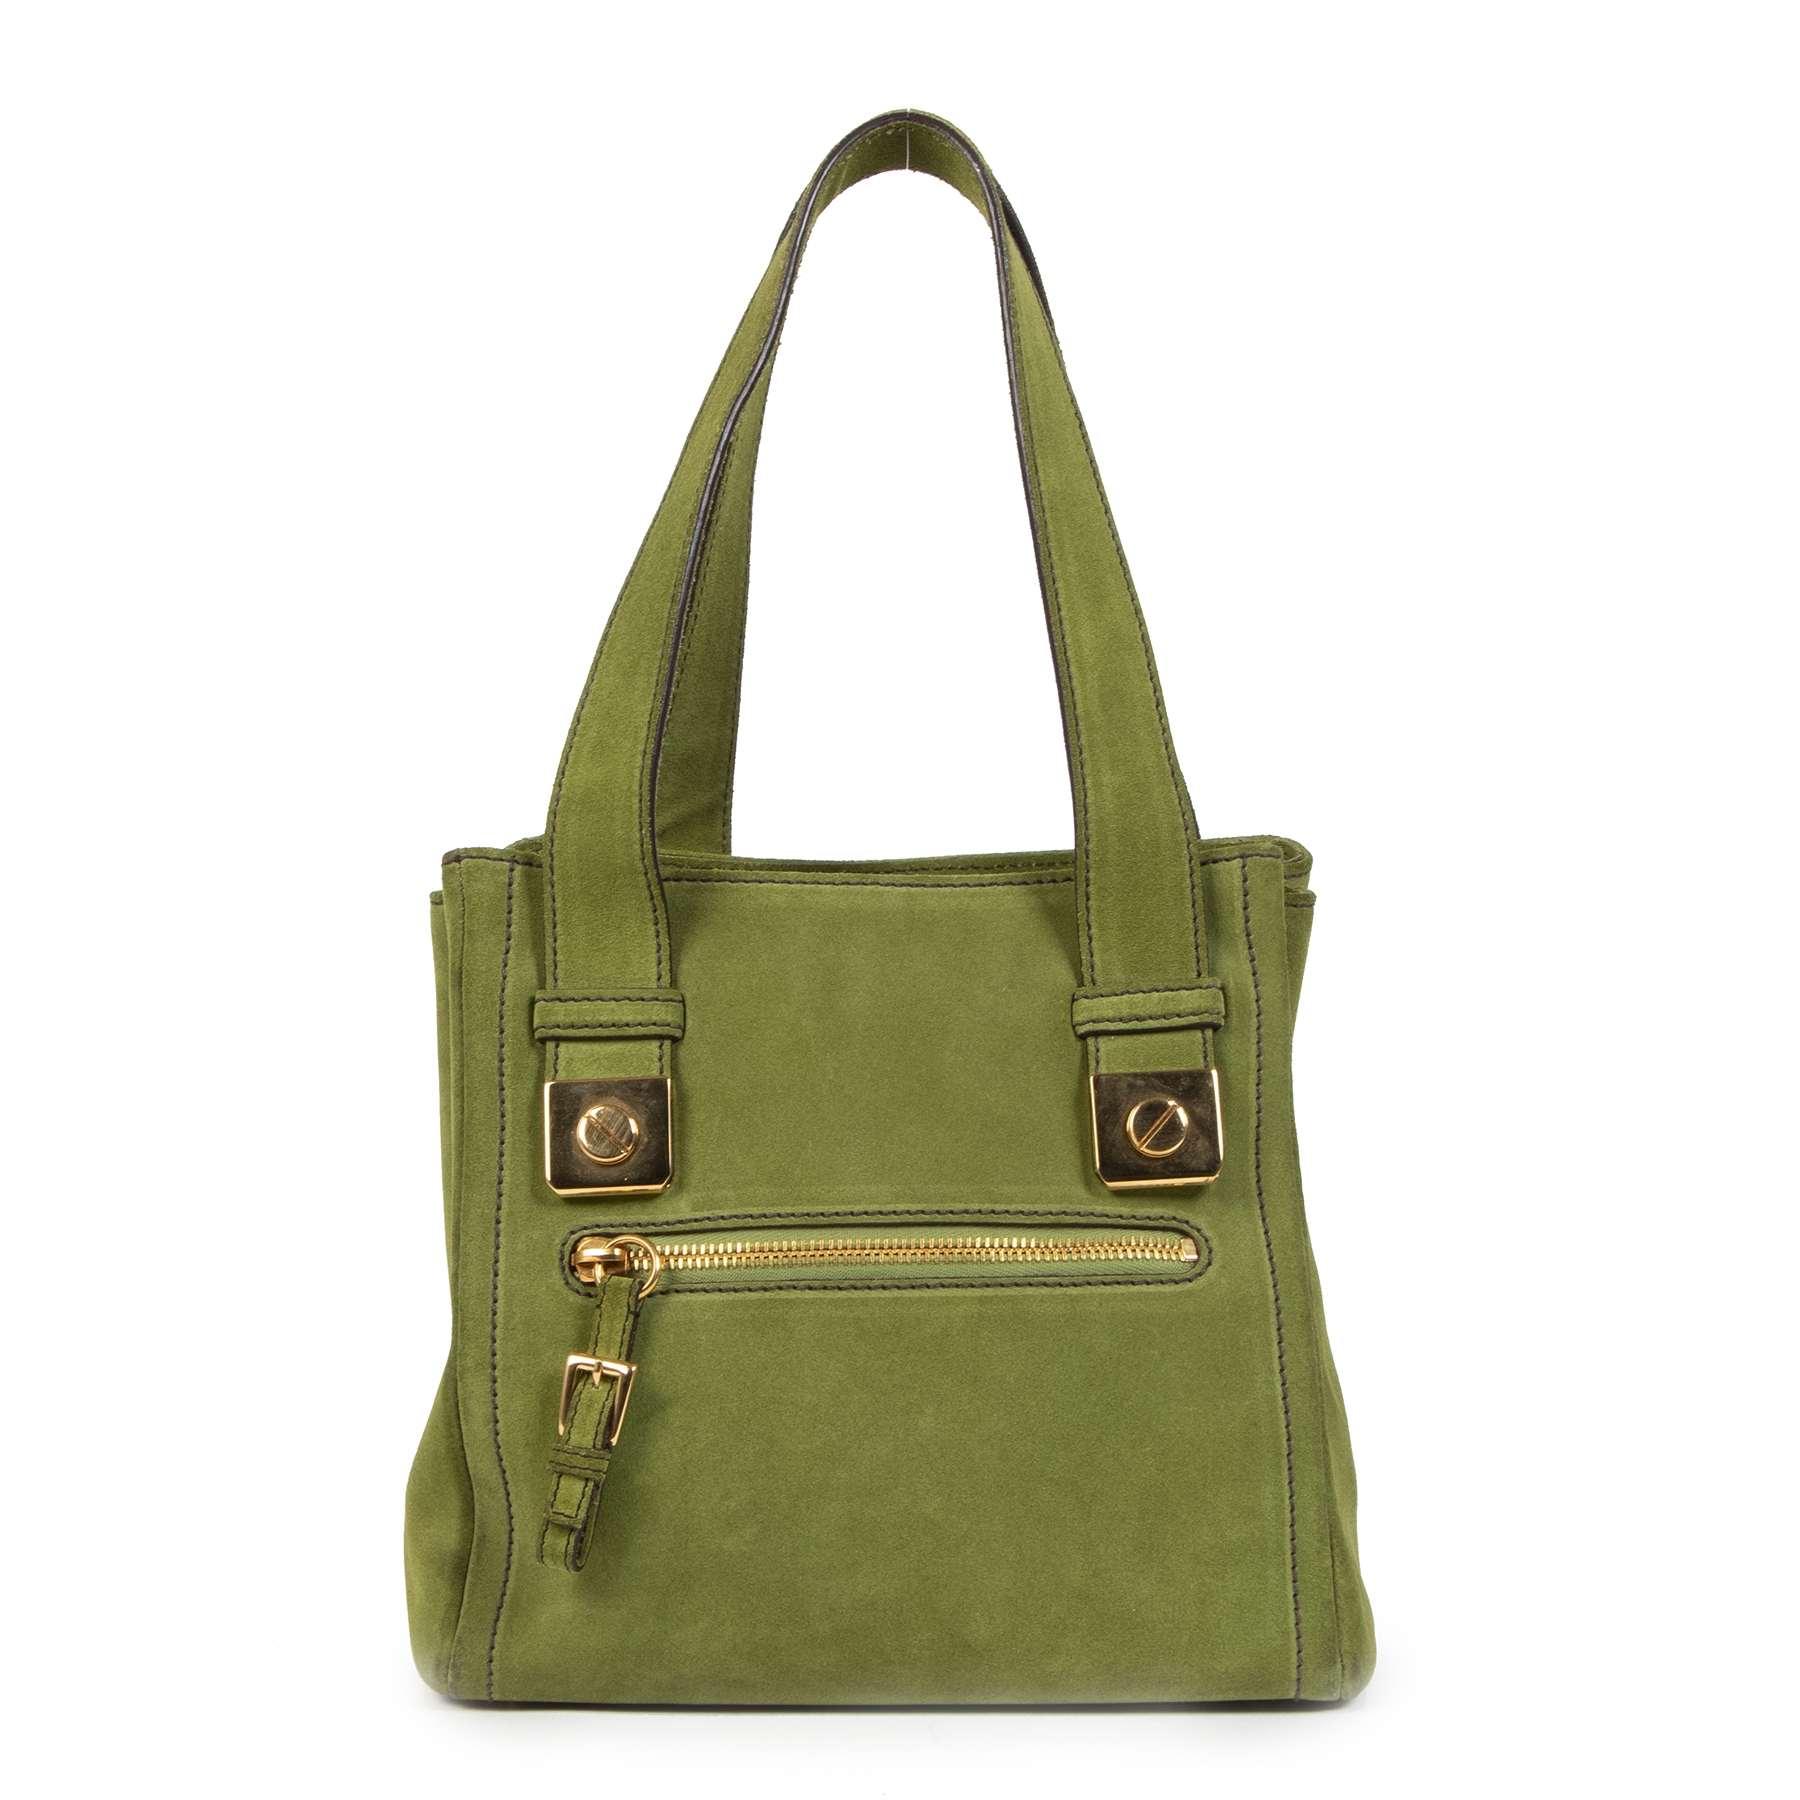 Authentic secondhand Prada Green Suede Top Handle Bag designer bags shoulder bags designer brands fashion luxury vintage webshop safe secure online shopping worldwide shipping delivery